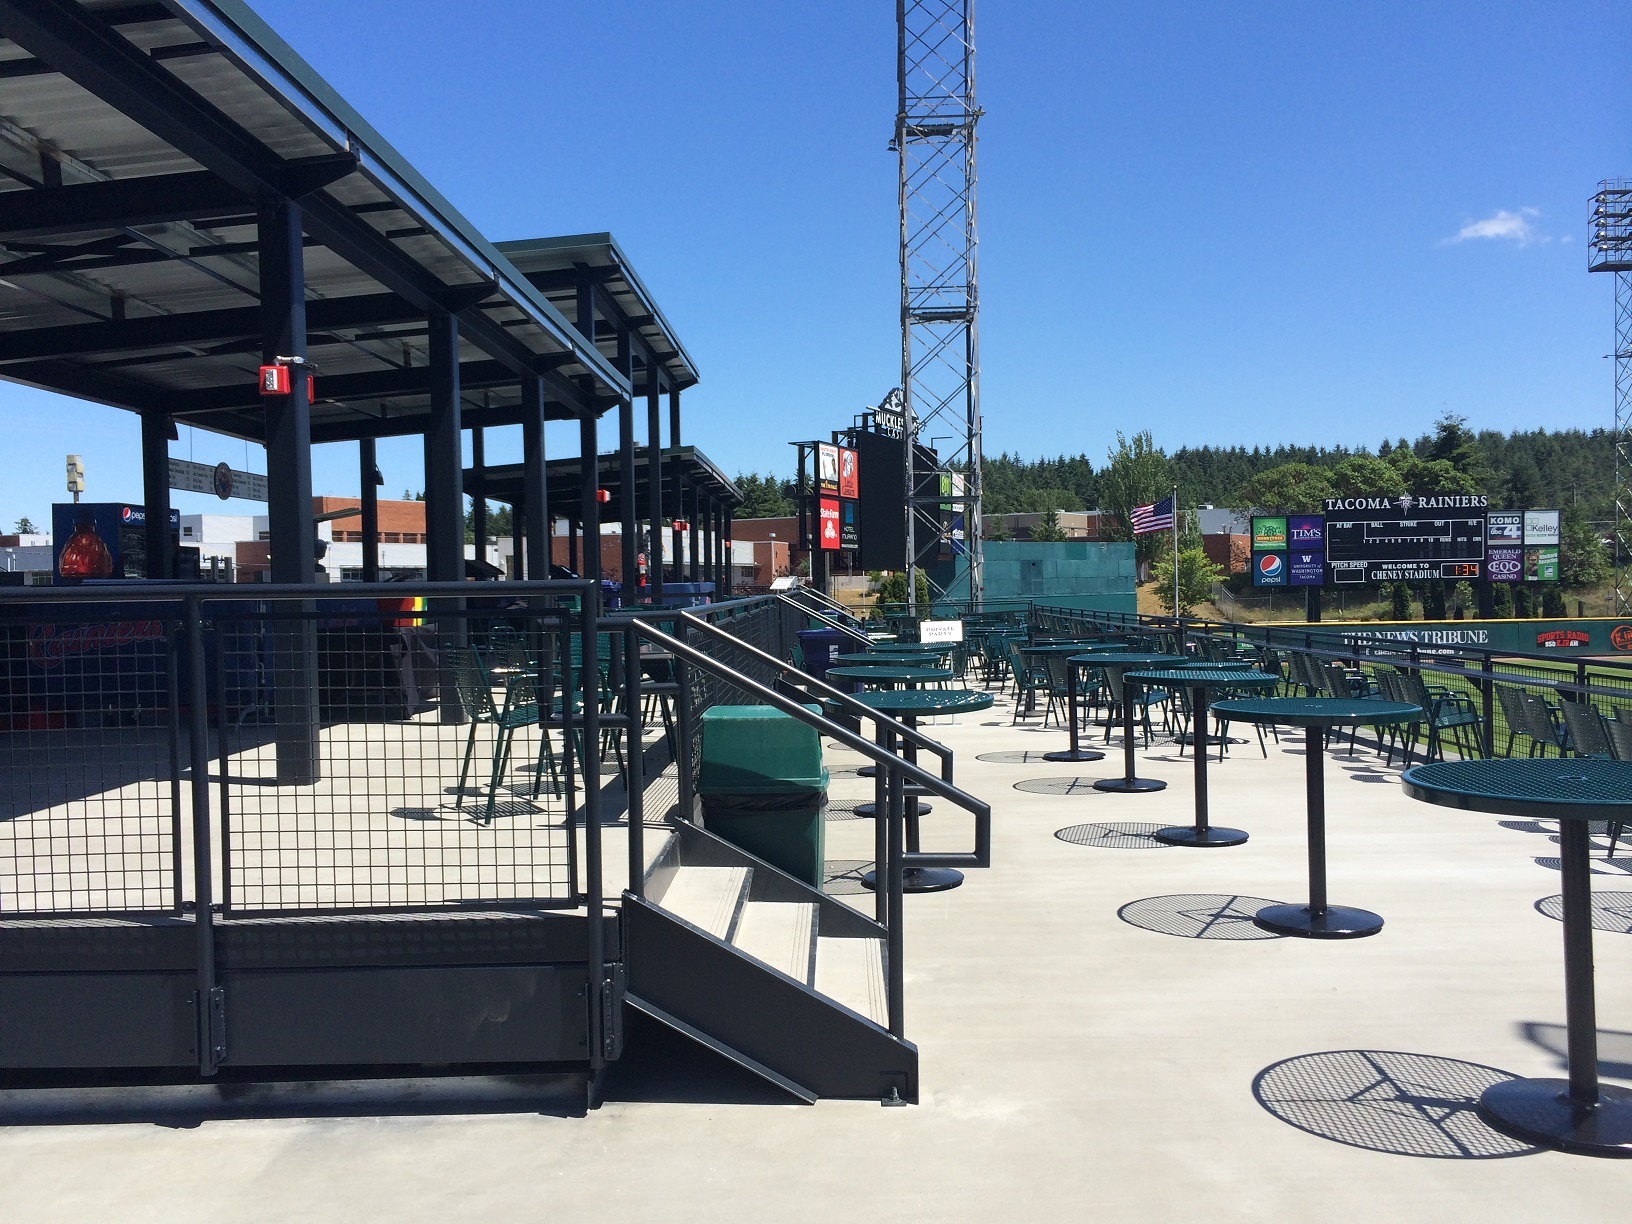 Scp Is A Home Run For Parties At Cheney Stadium Spray